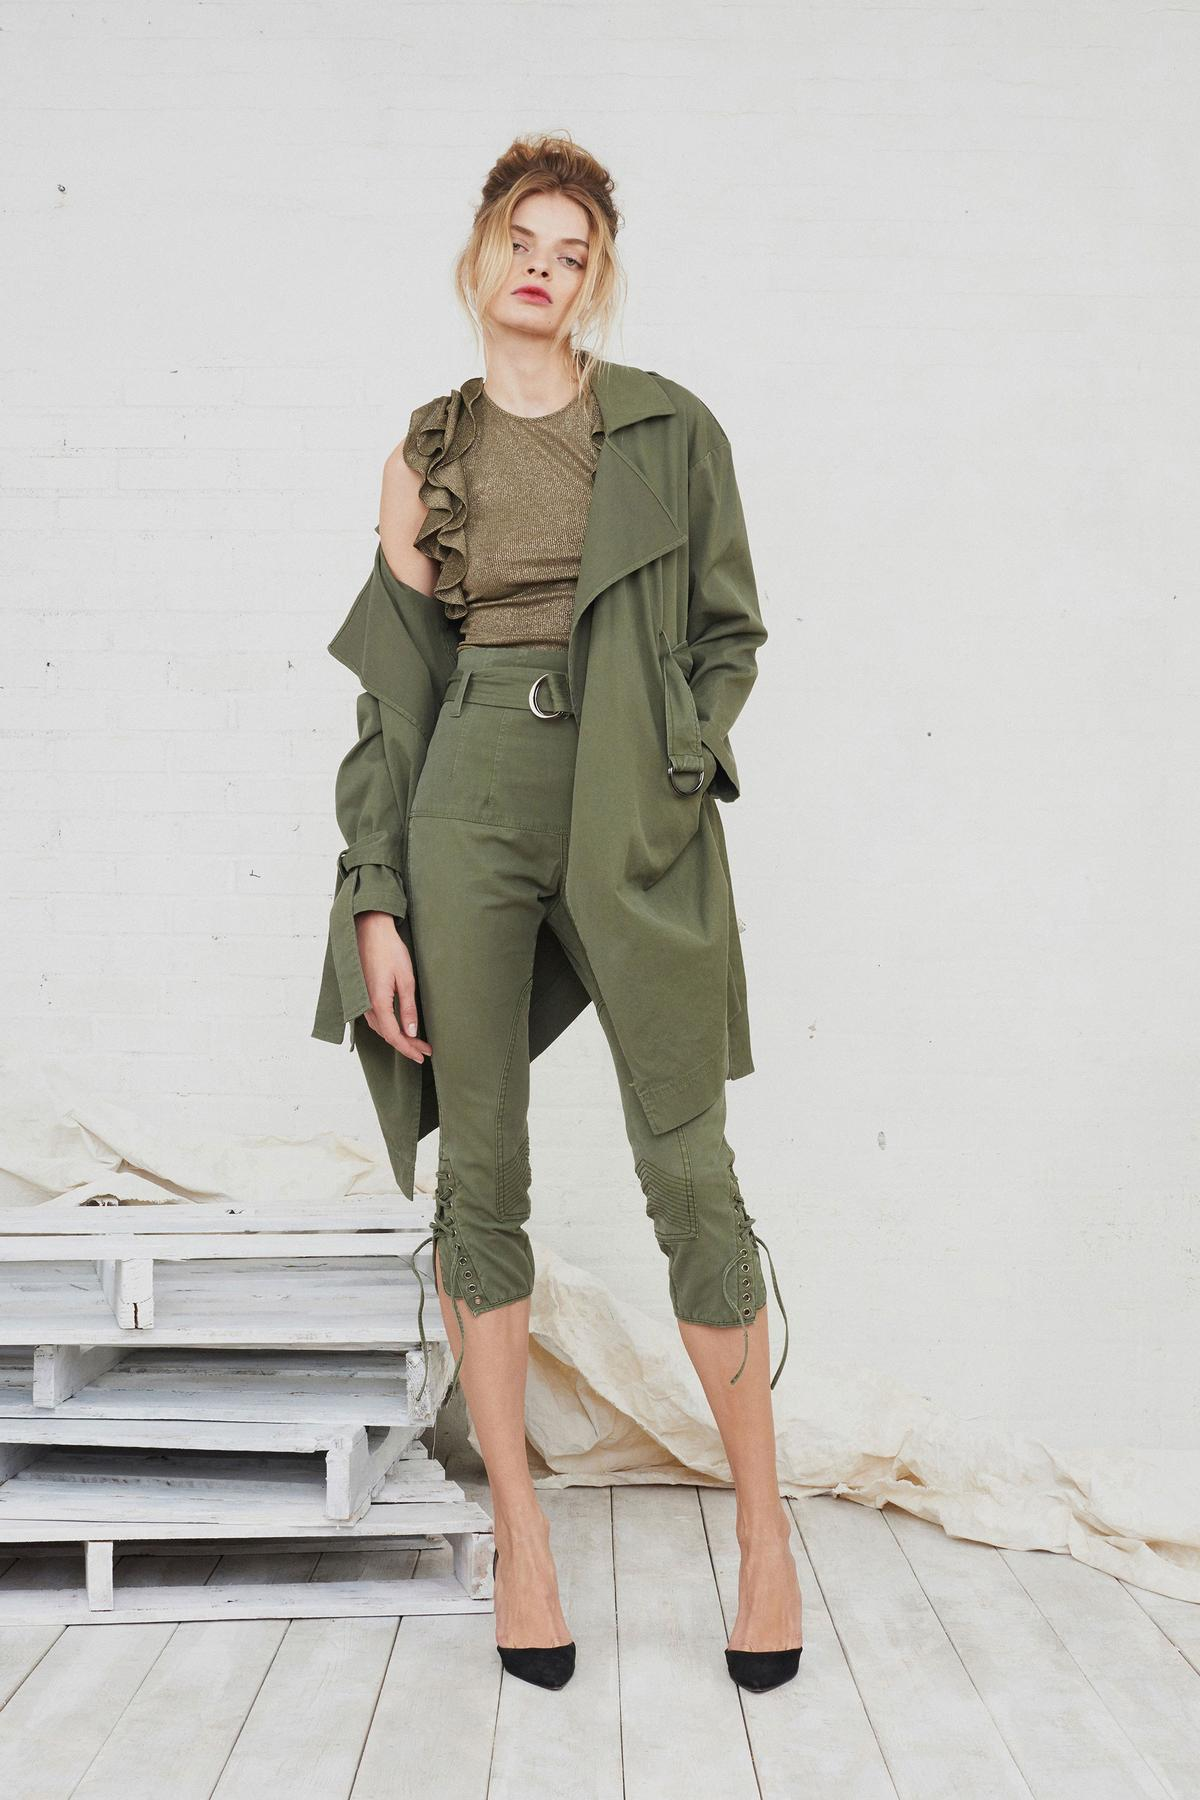 army green pants, army green jacket, ruffled top